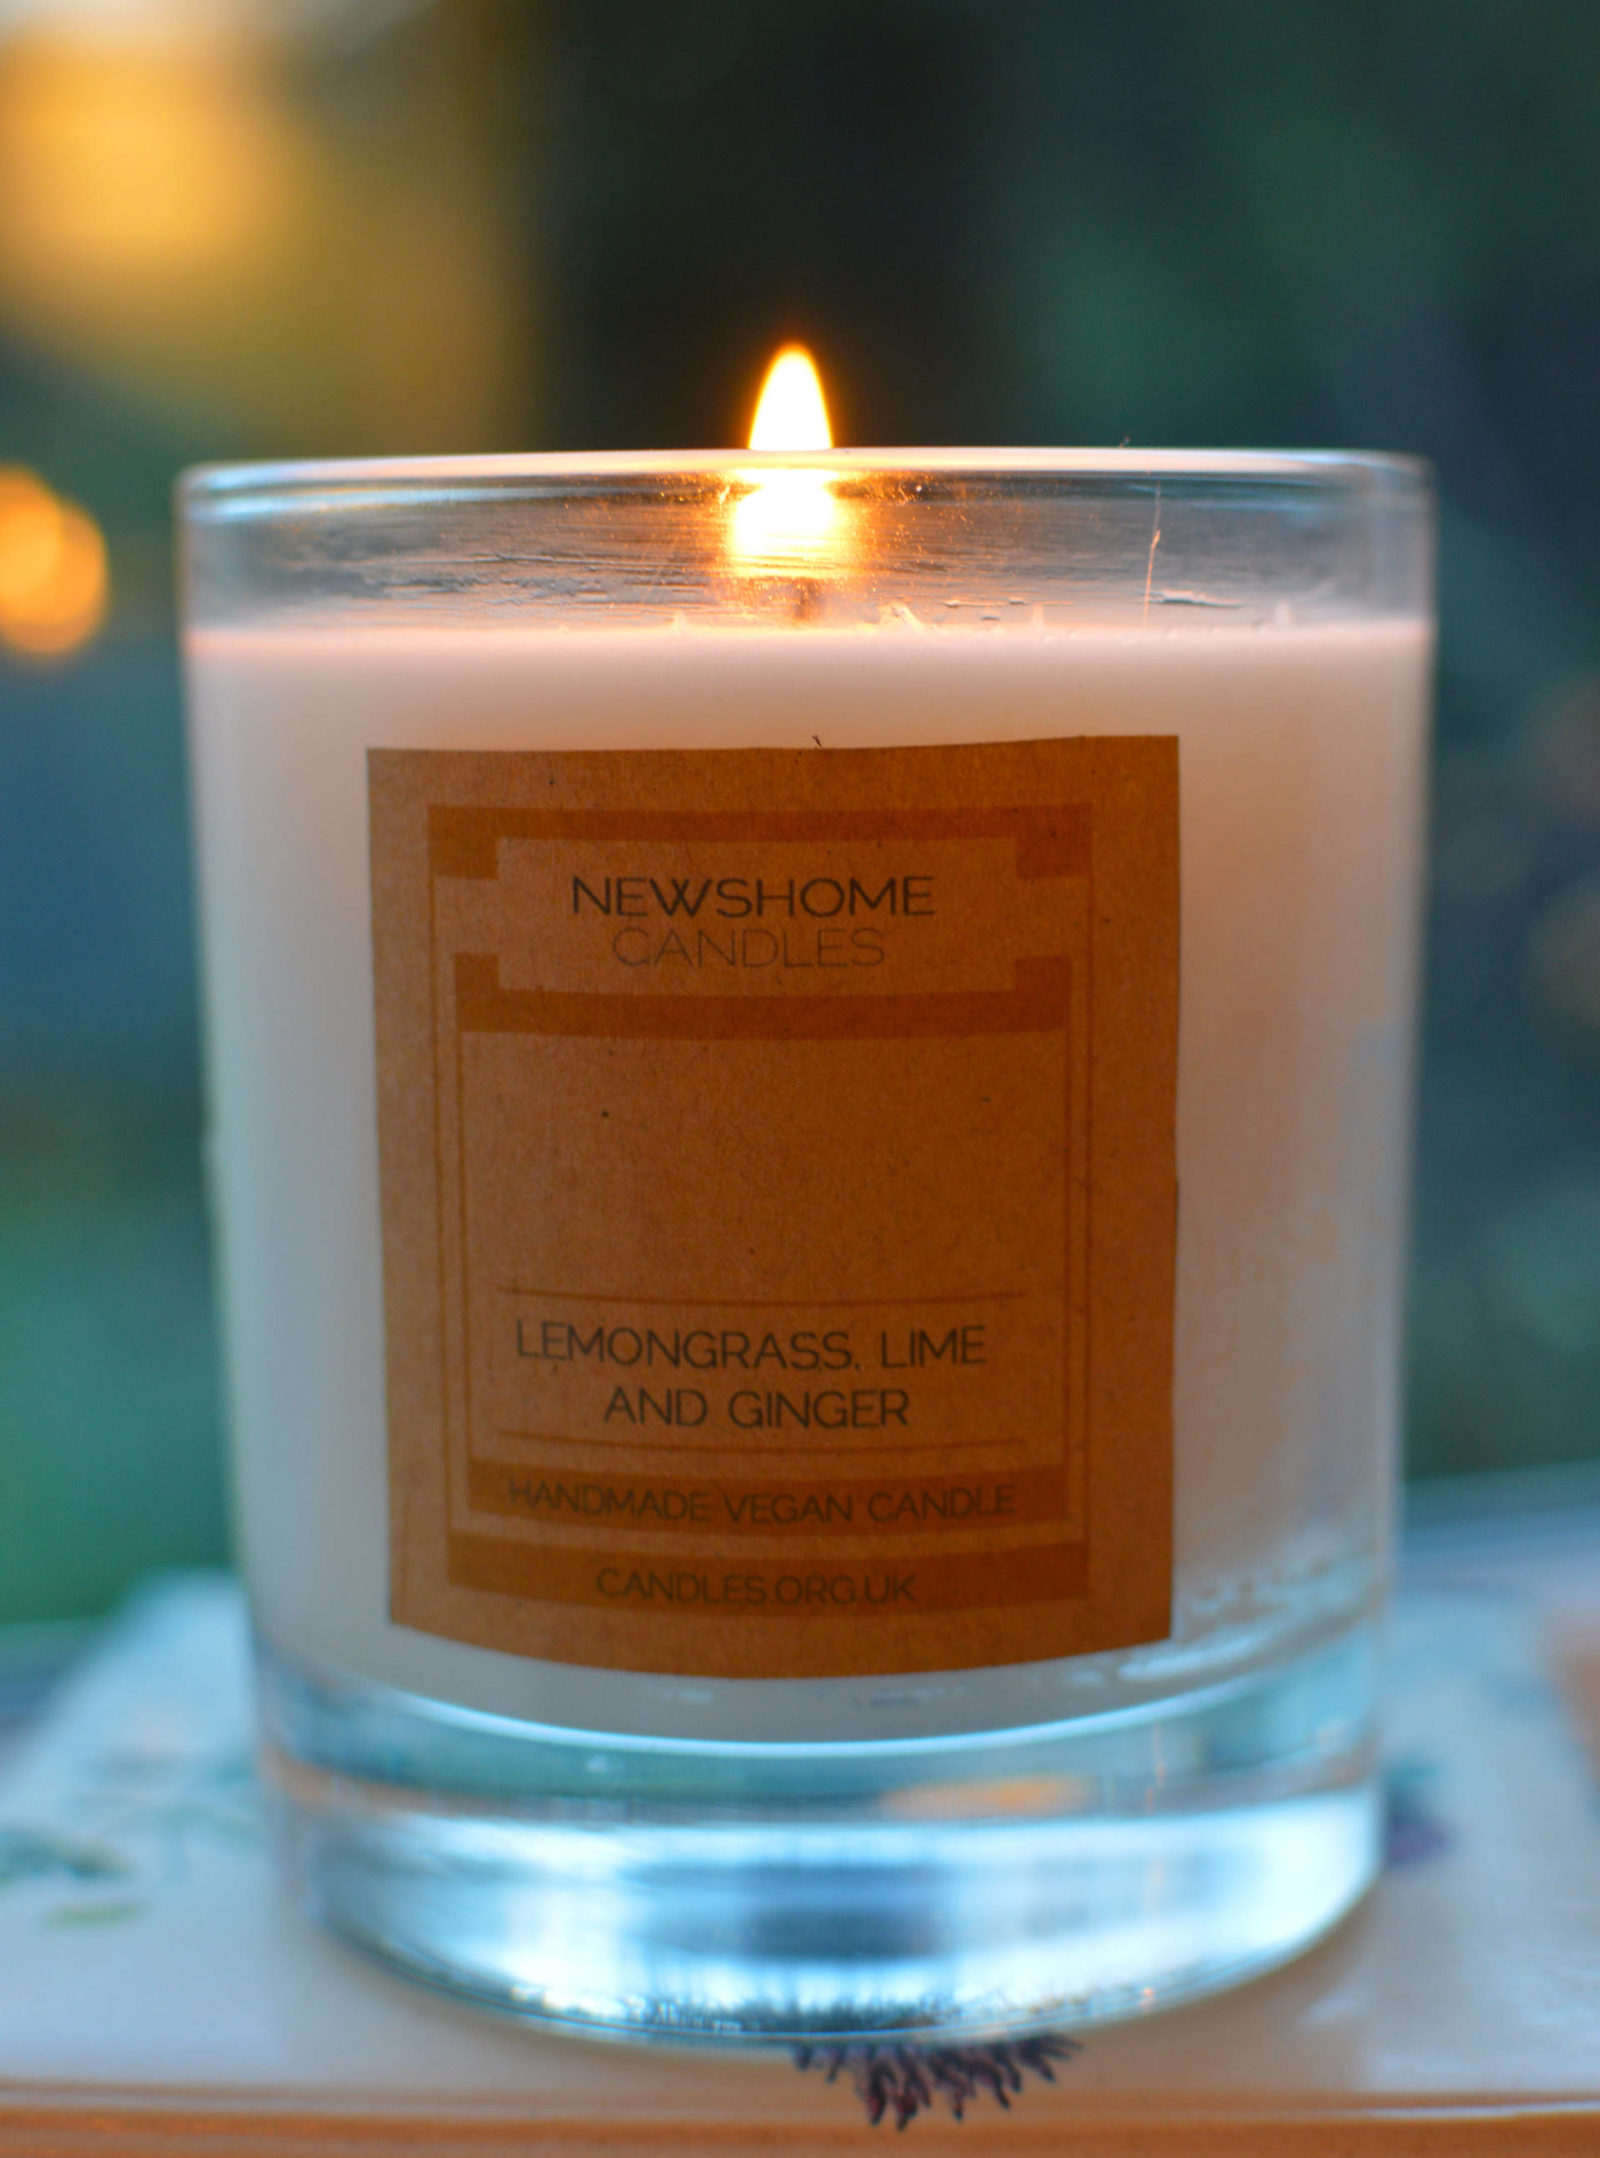 Newshome organic vegan candle